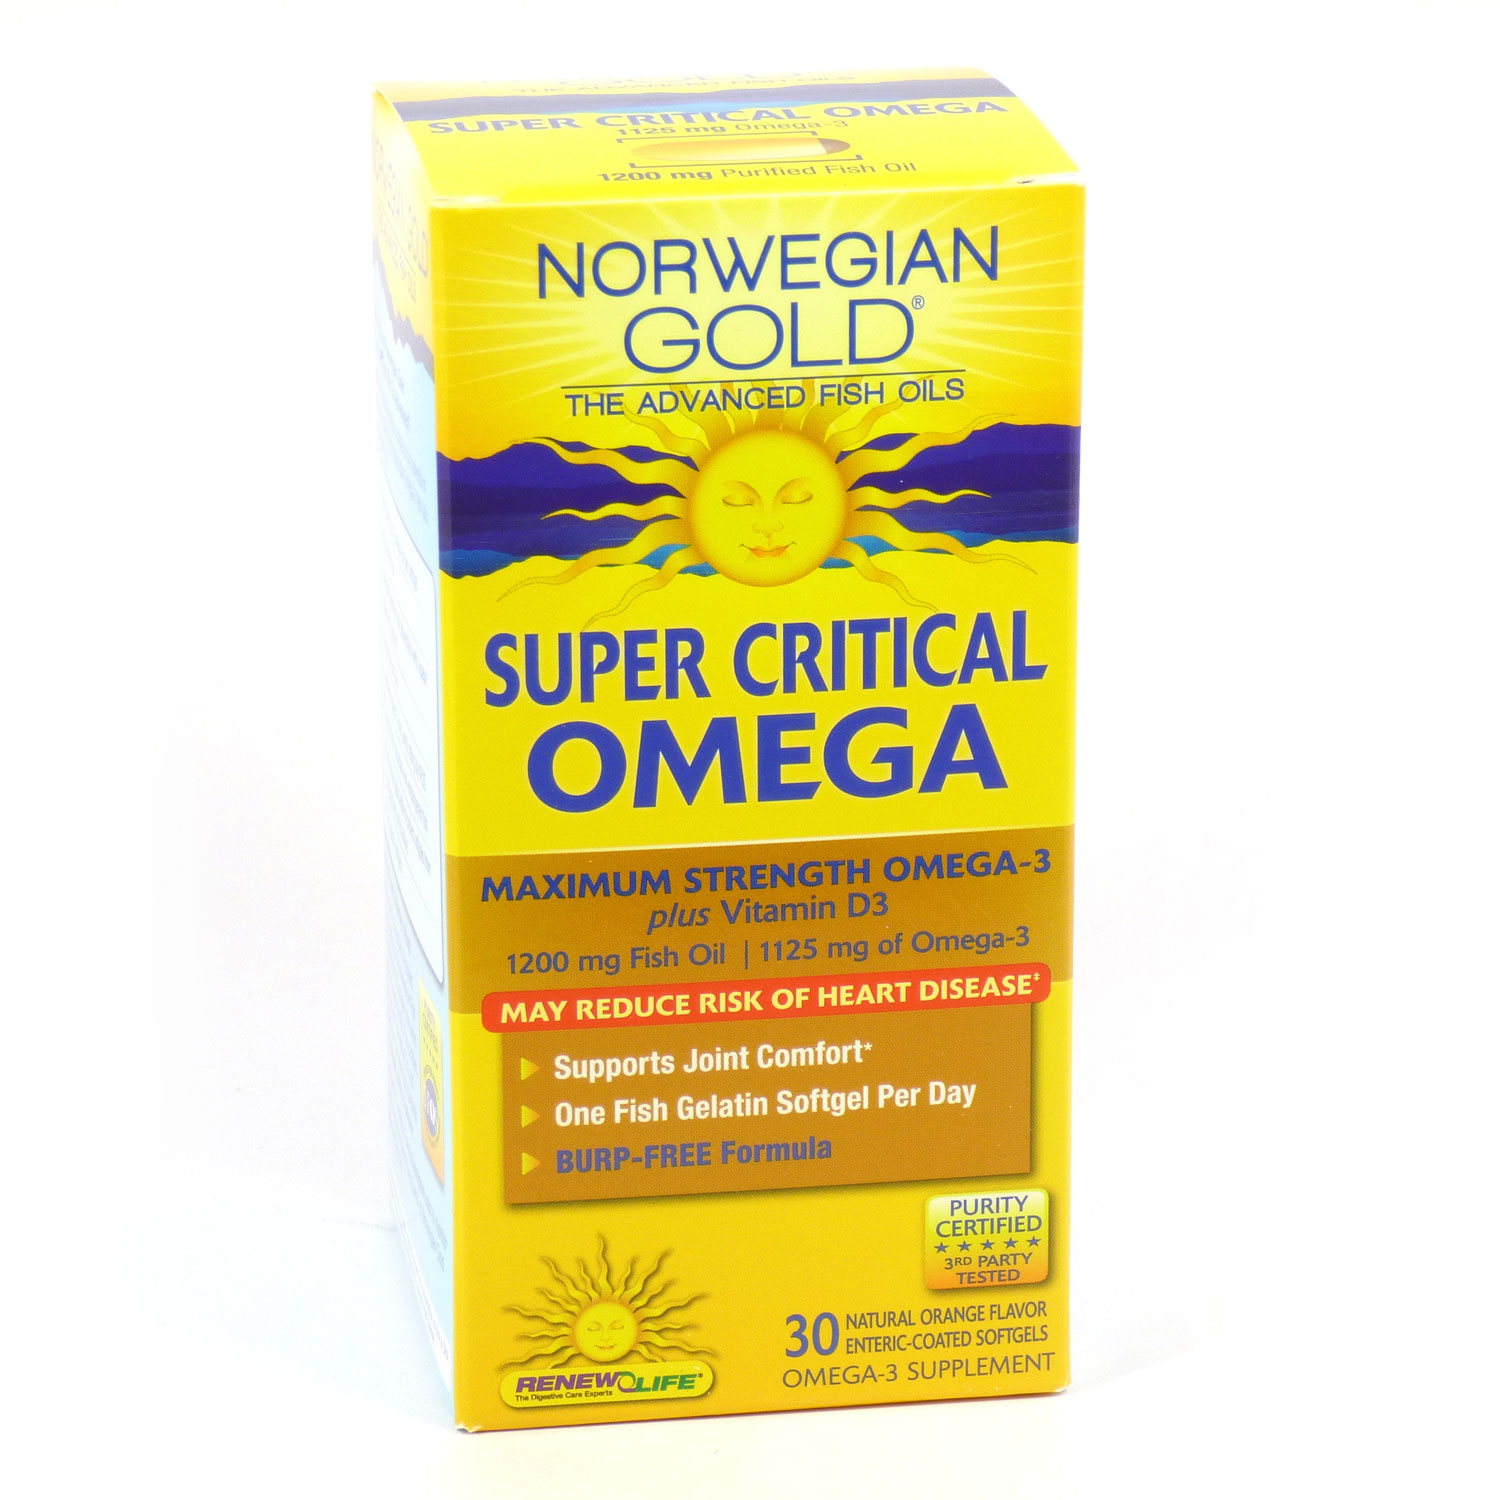 Super Critical Omega Norwegian Gold 1200mg By Renew Life - 30 Count